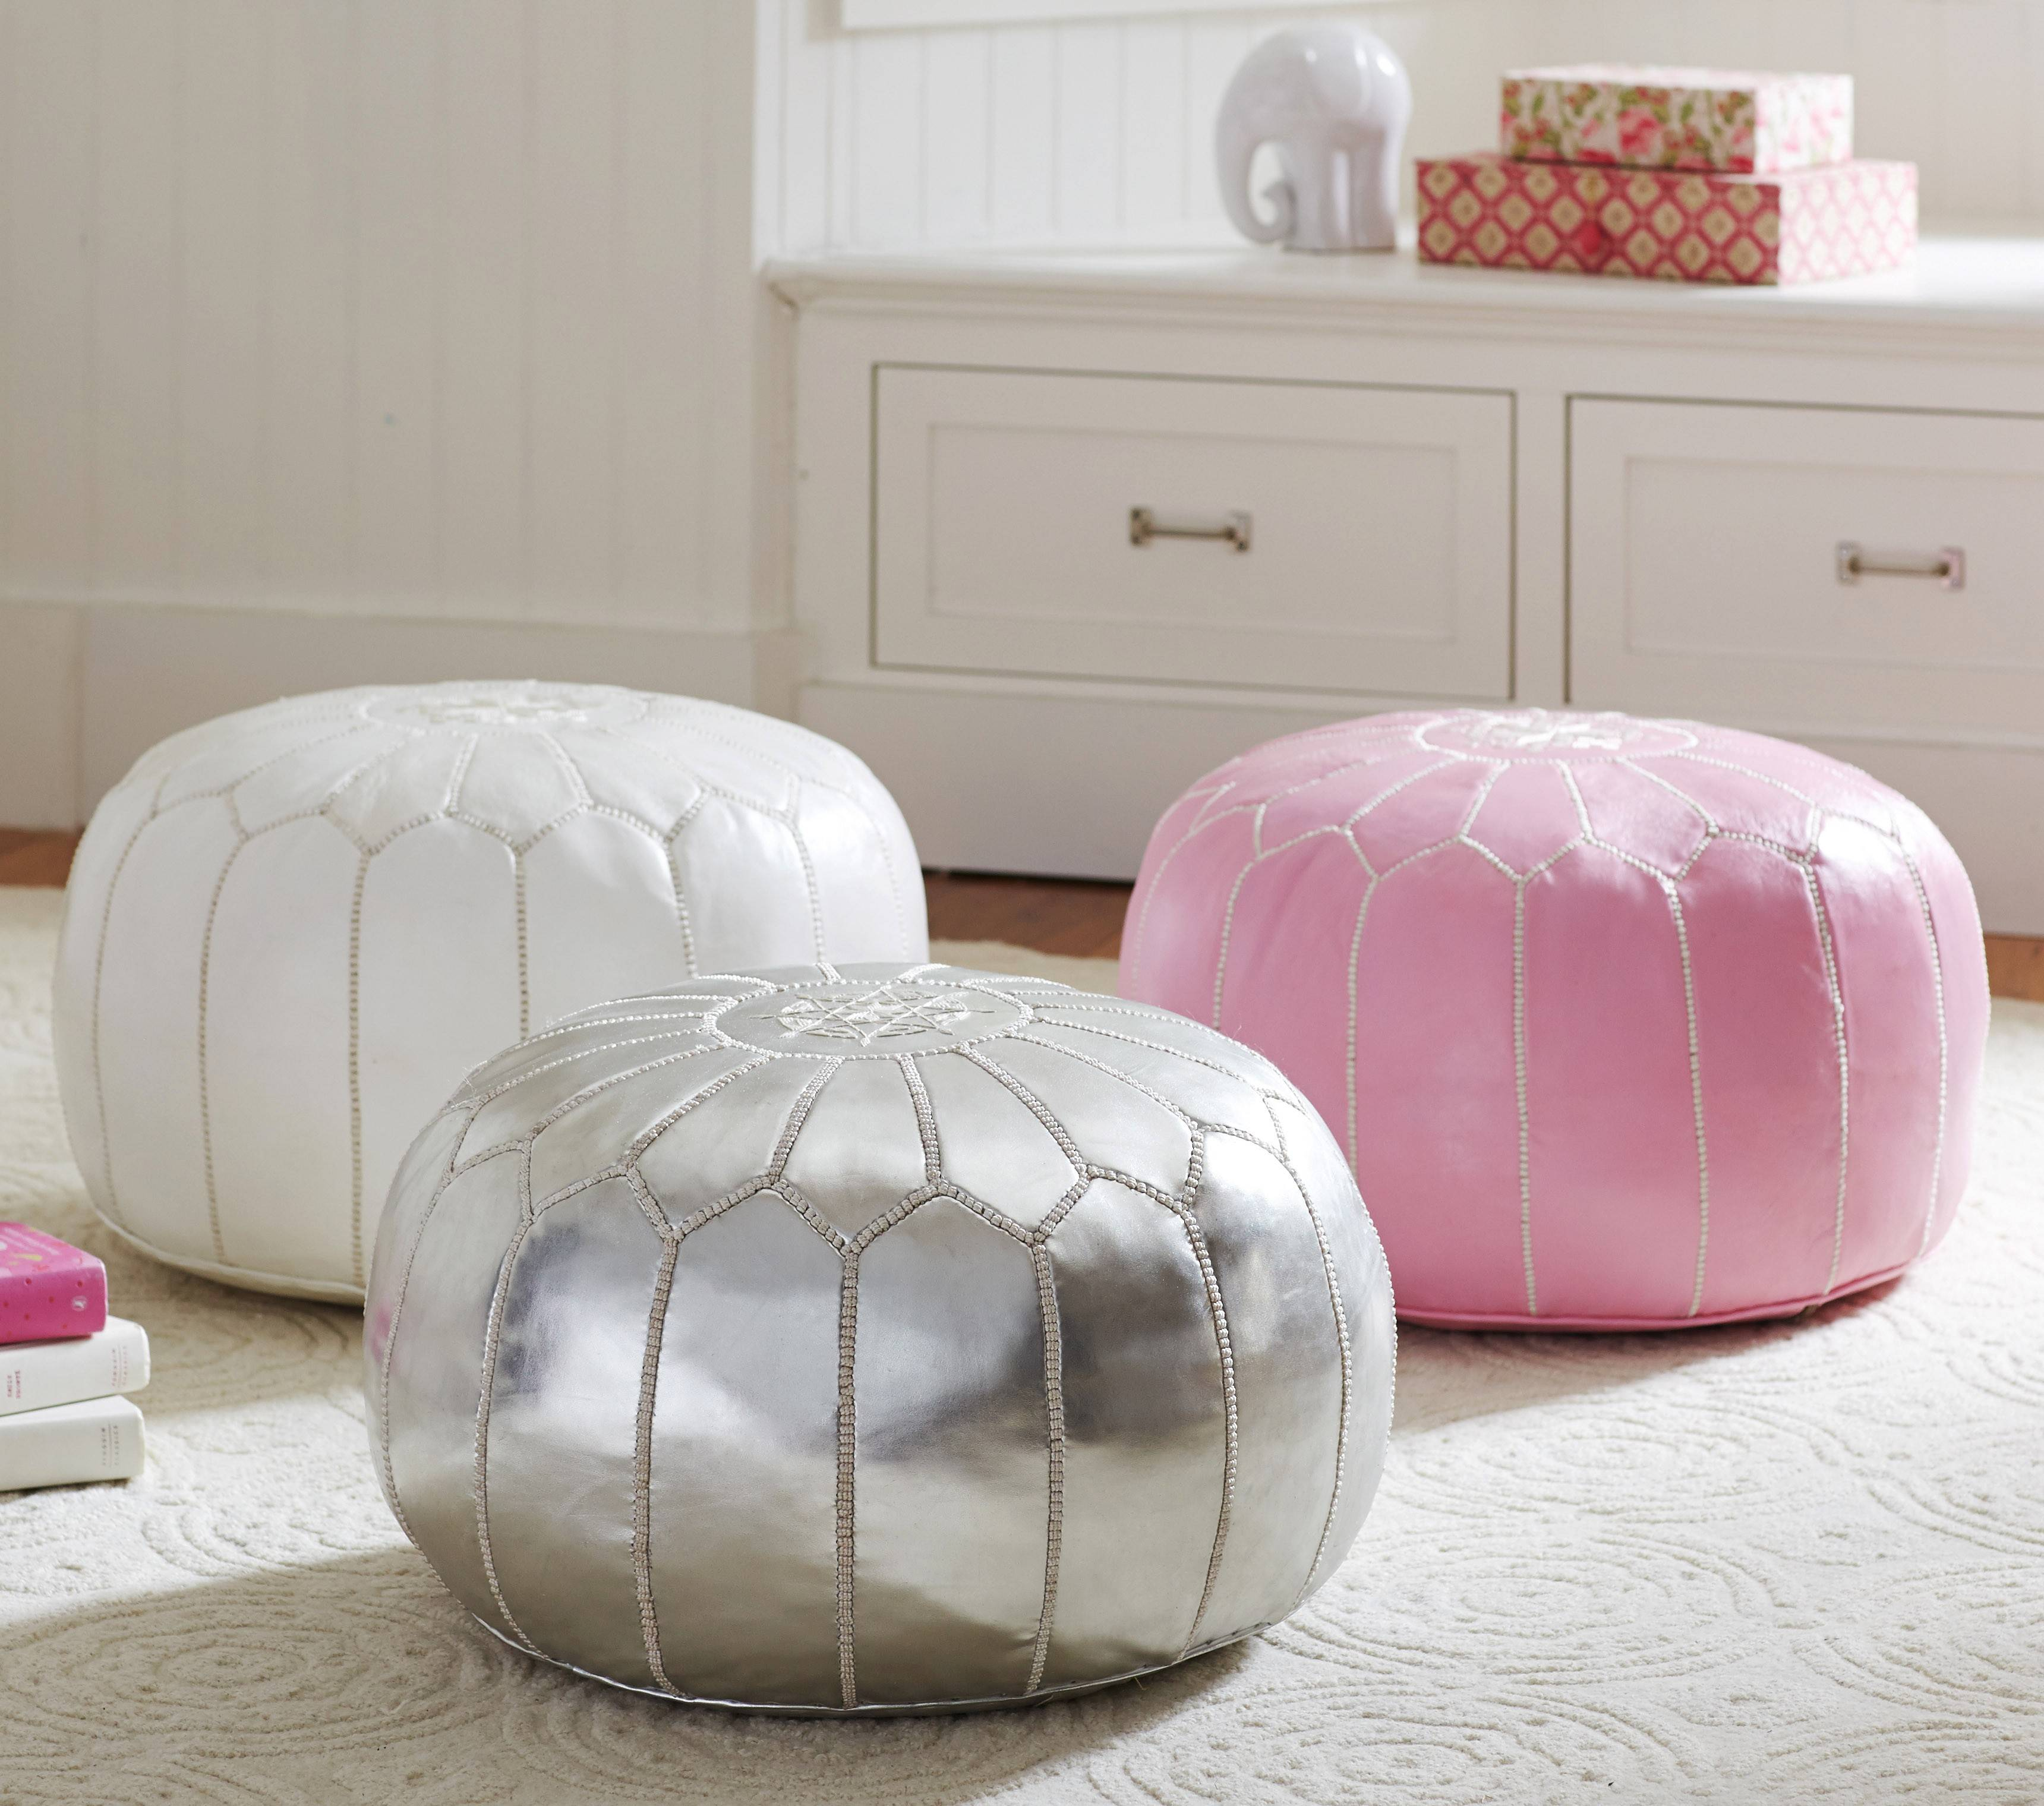 Adding in a few pink accessories freshens a great room or living room for spring. A pink pouf is a practical piece with flair.